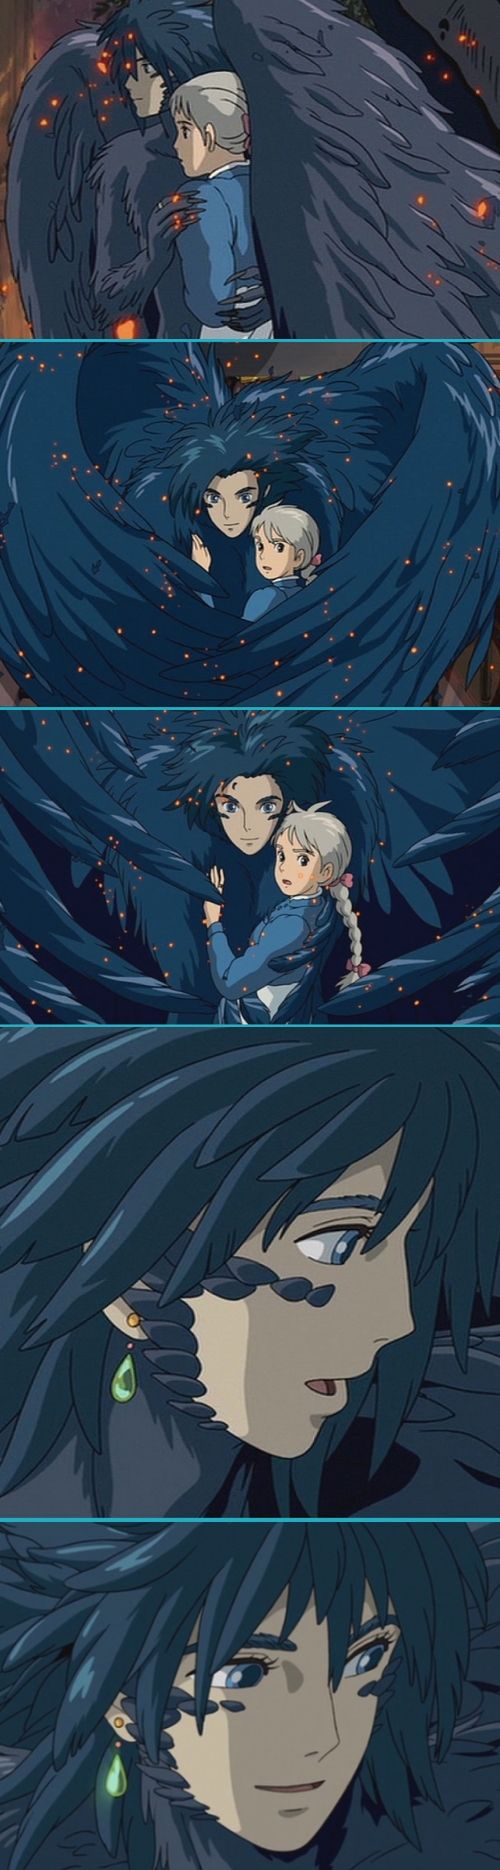 Howl's Moving Castle 7 ;)